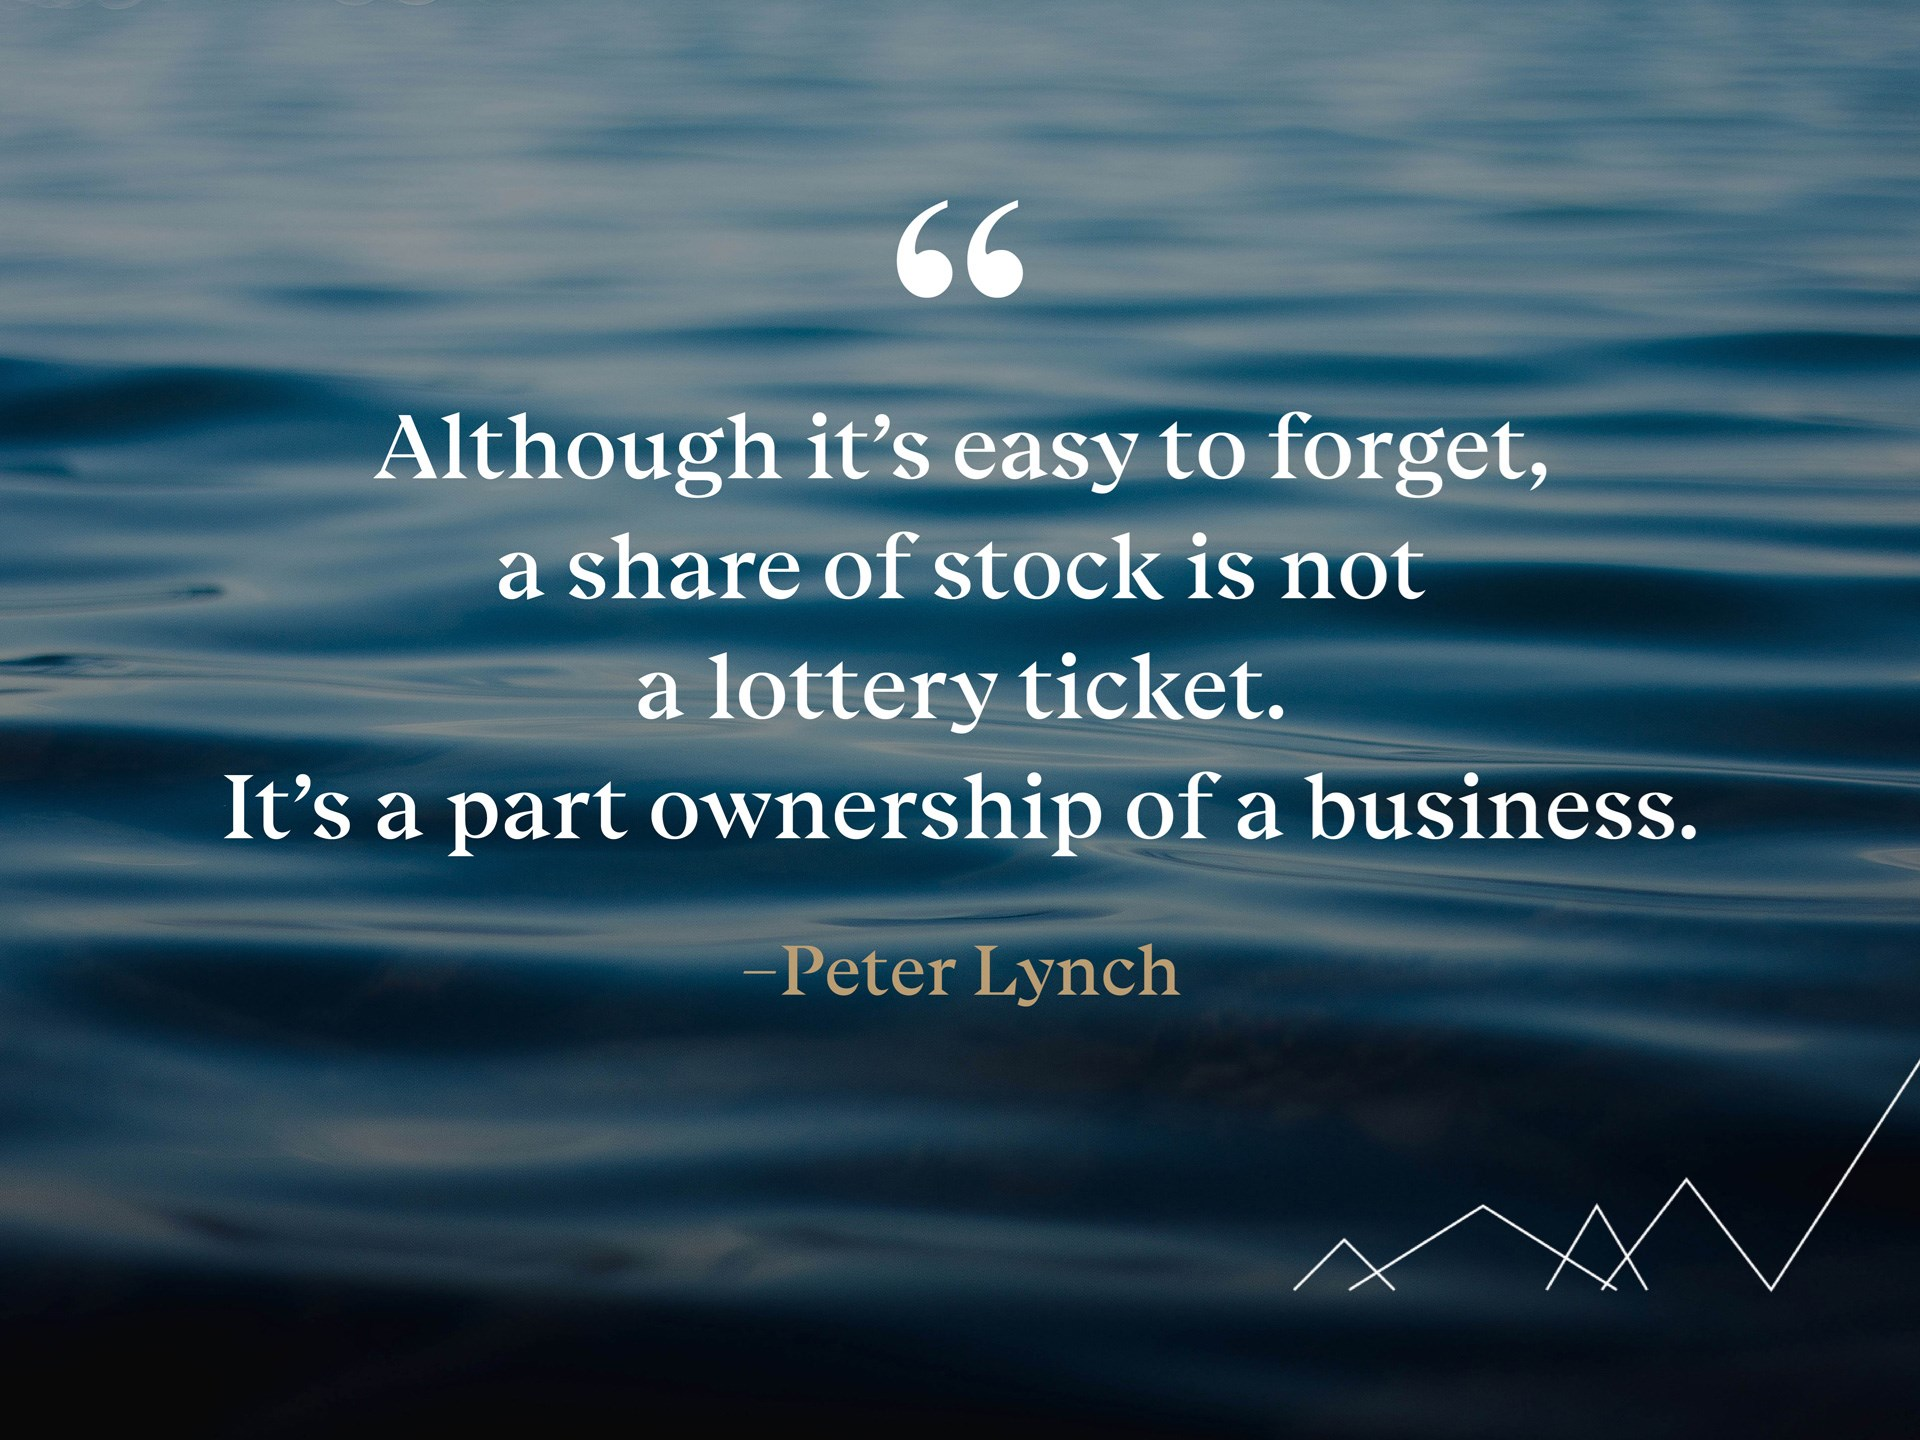 Quote: «Although it's easy to forget, a share of stock is not a lottery ticket. It's a part ownership of a business.» -Peter Lynch